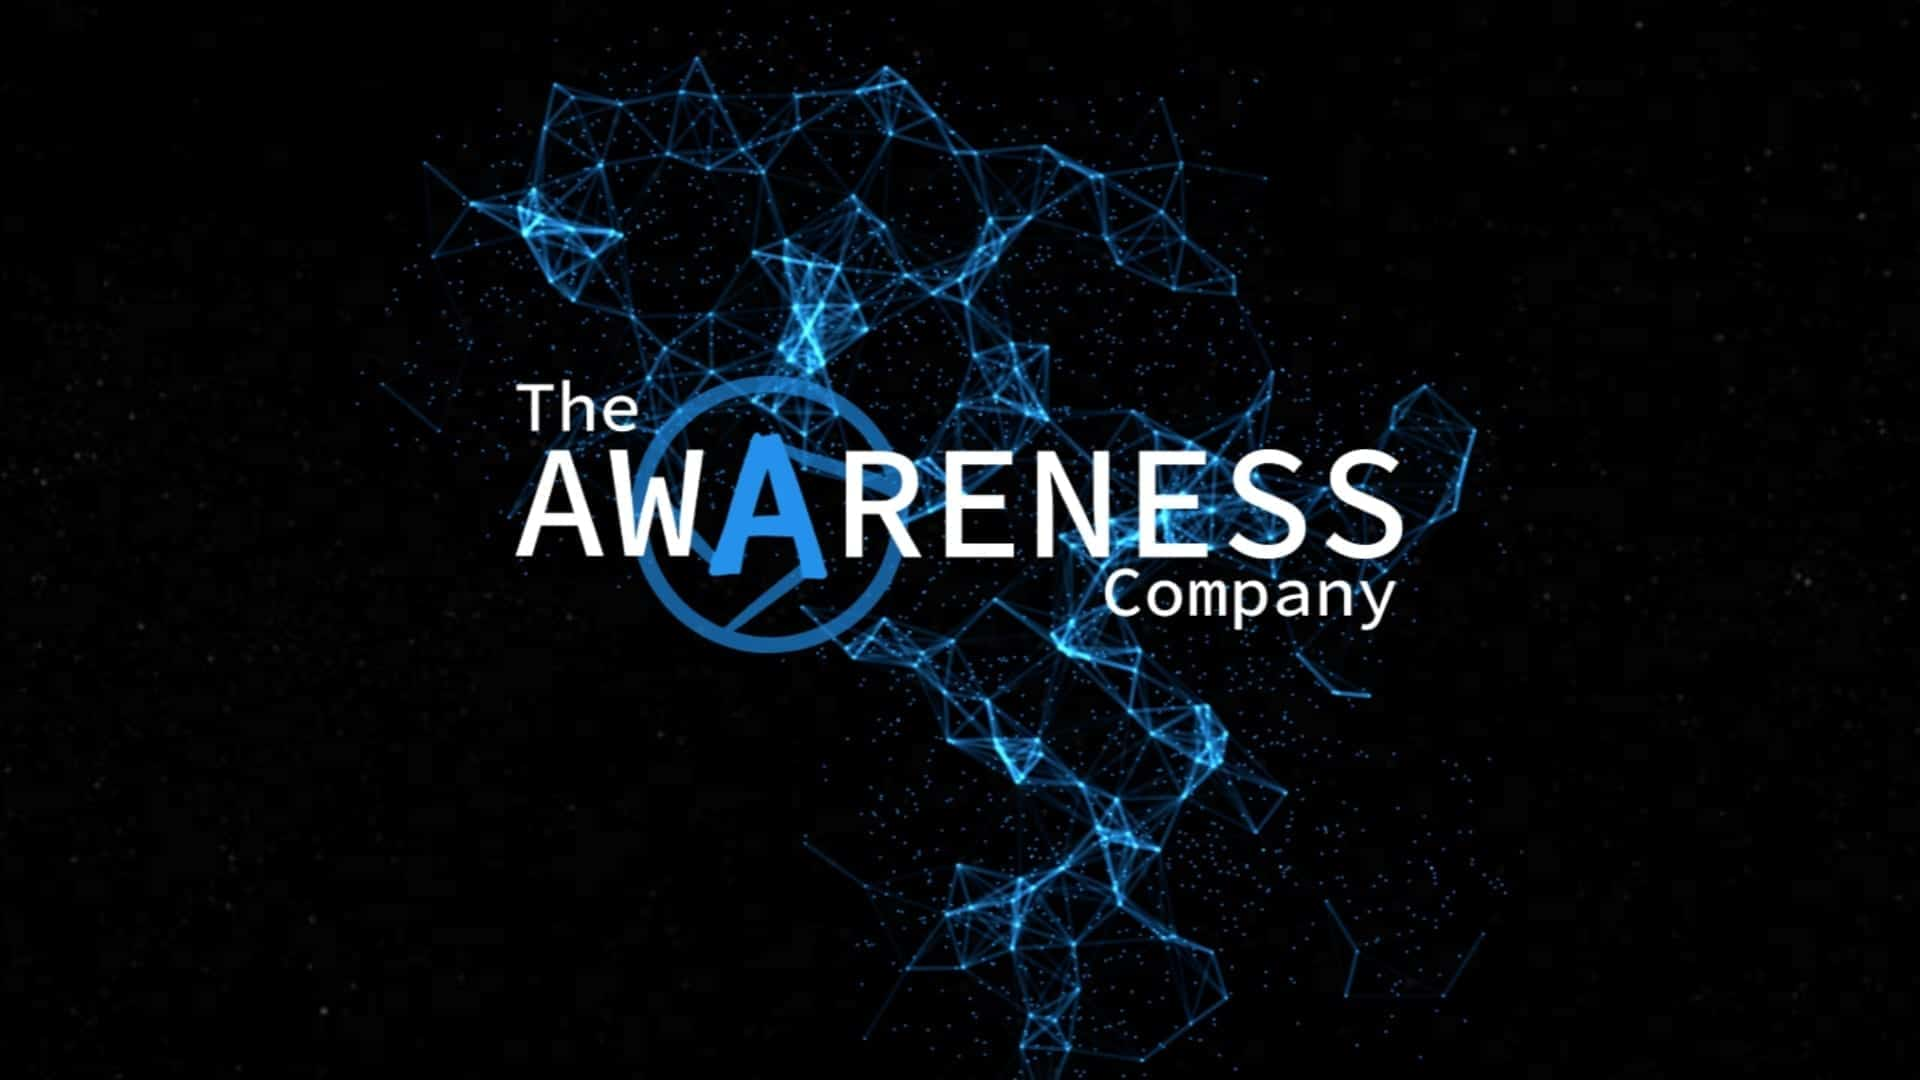 SA's The Awareness Company is using data-driven storytelling to improve decision making in organisations